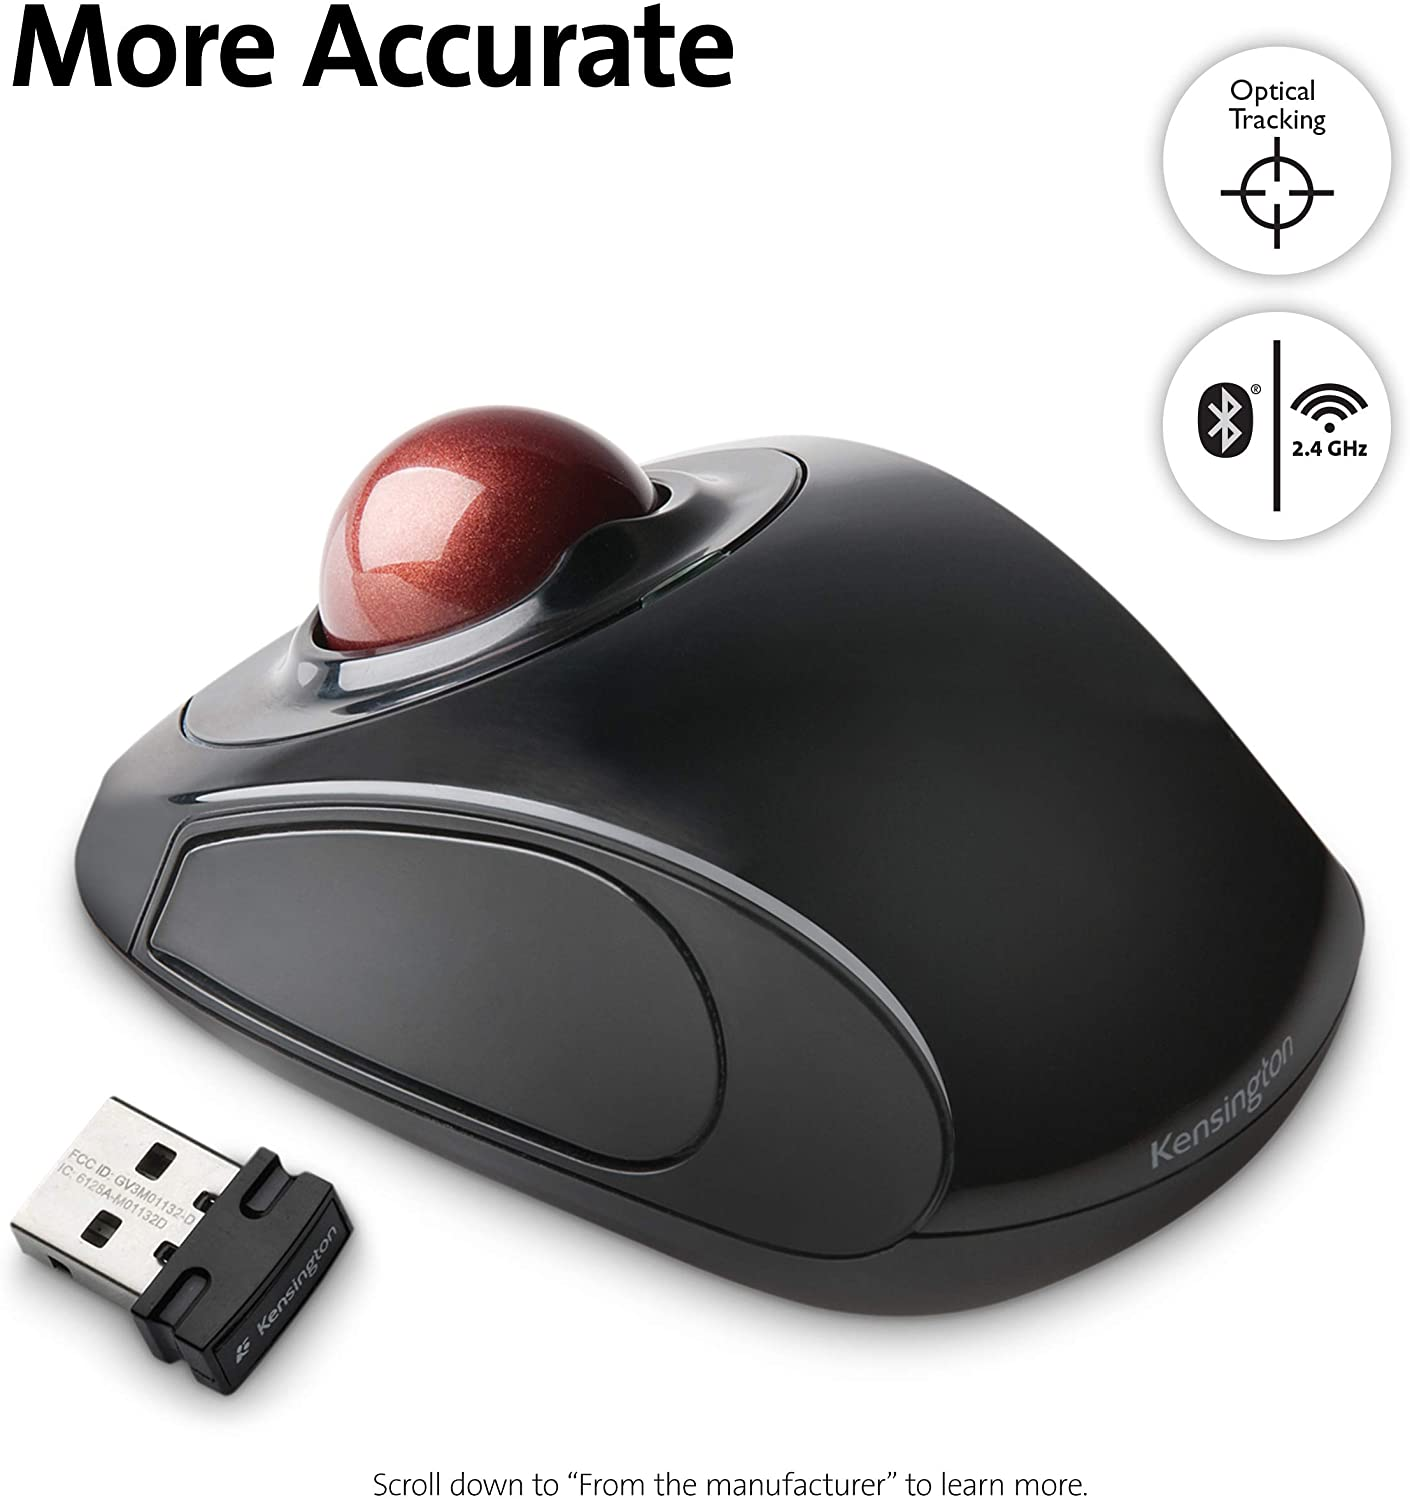 Kensington Wireless Orbit Optical Trackball Mouse